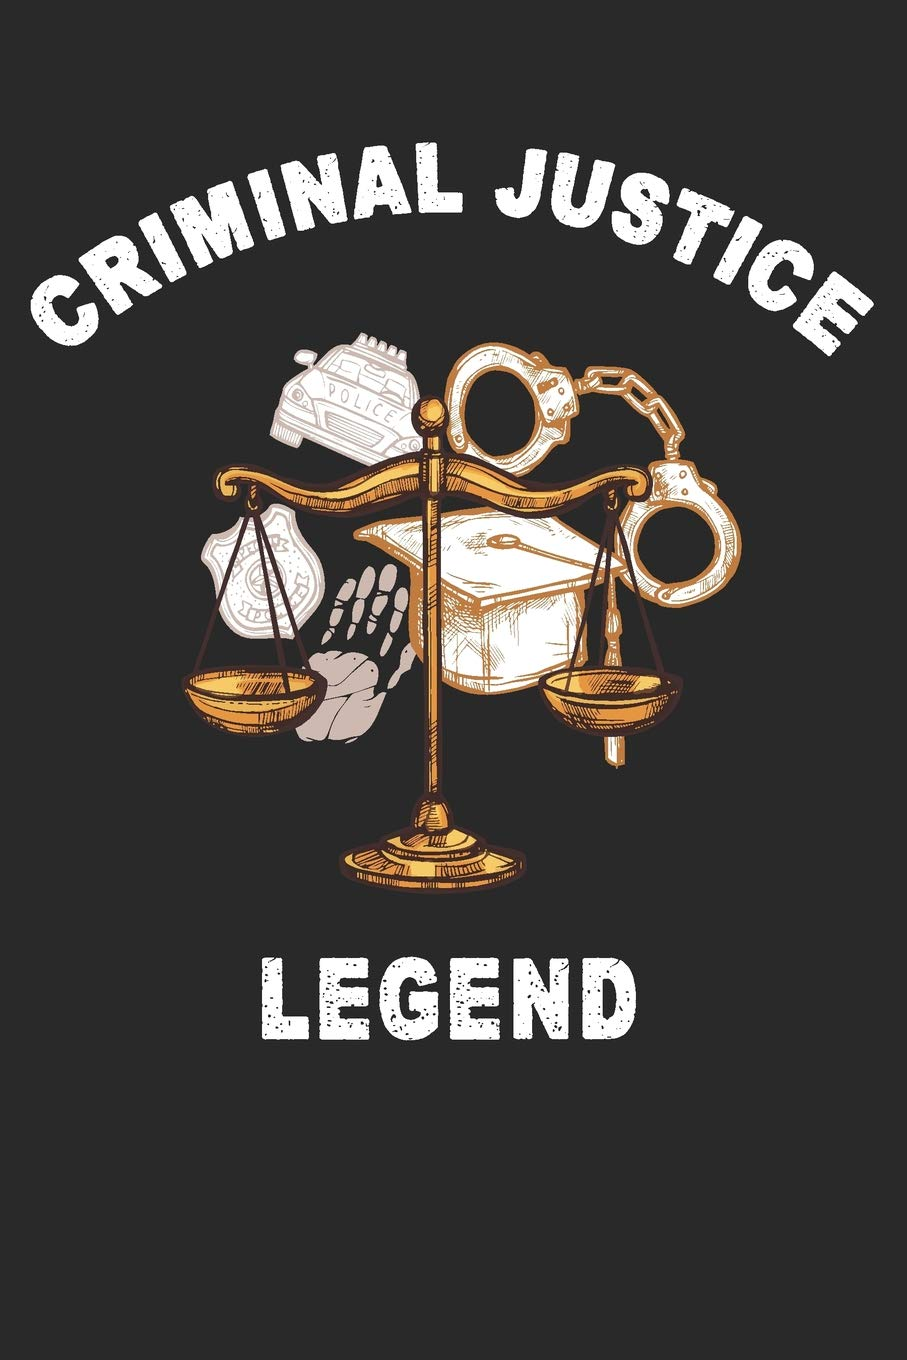 Buy Criminal Justice Legend Lined Notebook For Forensic Science Technician Private Detective Correctional Officer Law Enforcement Criminal Justice Graduation Gifts Book Online At Low Prices In India Criminal Justice Legend Lined